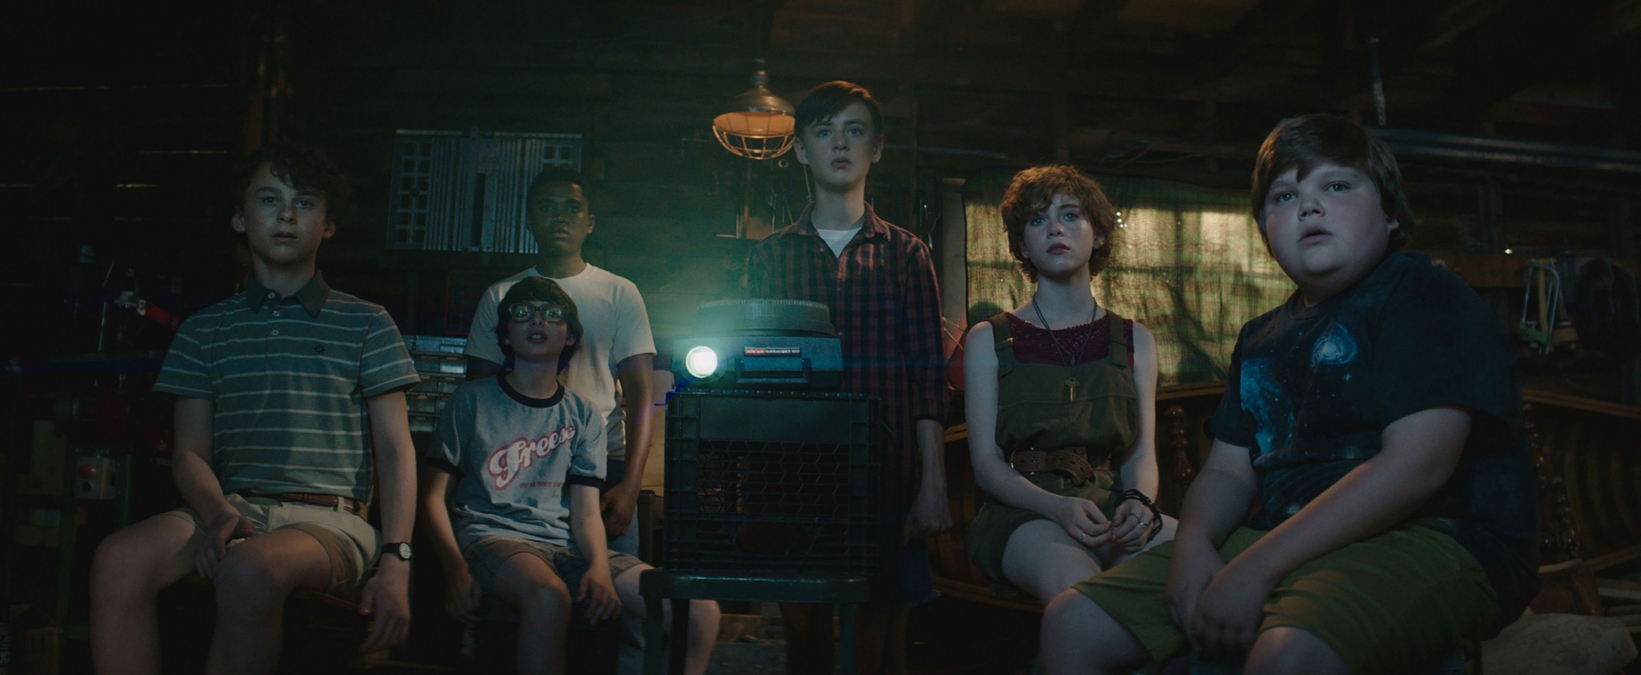 Warner Bros. Decides To Stay In Its Lane With The It: Chapter Two Release Date